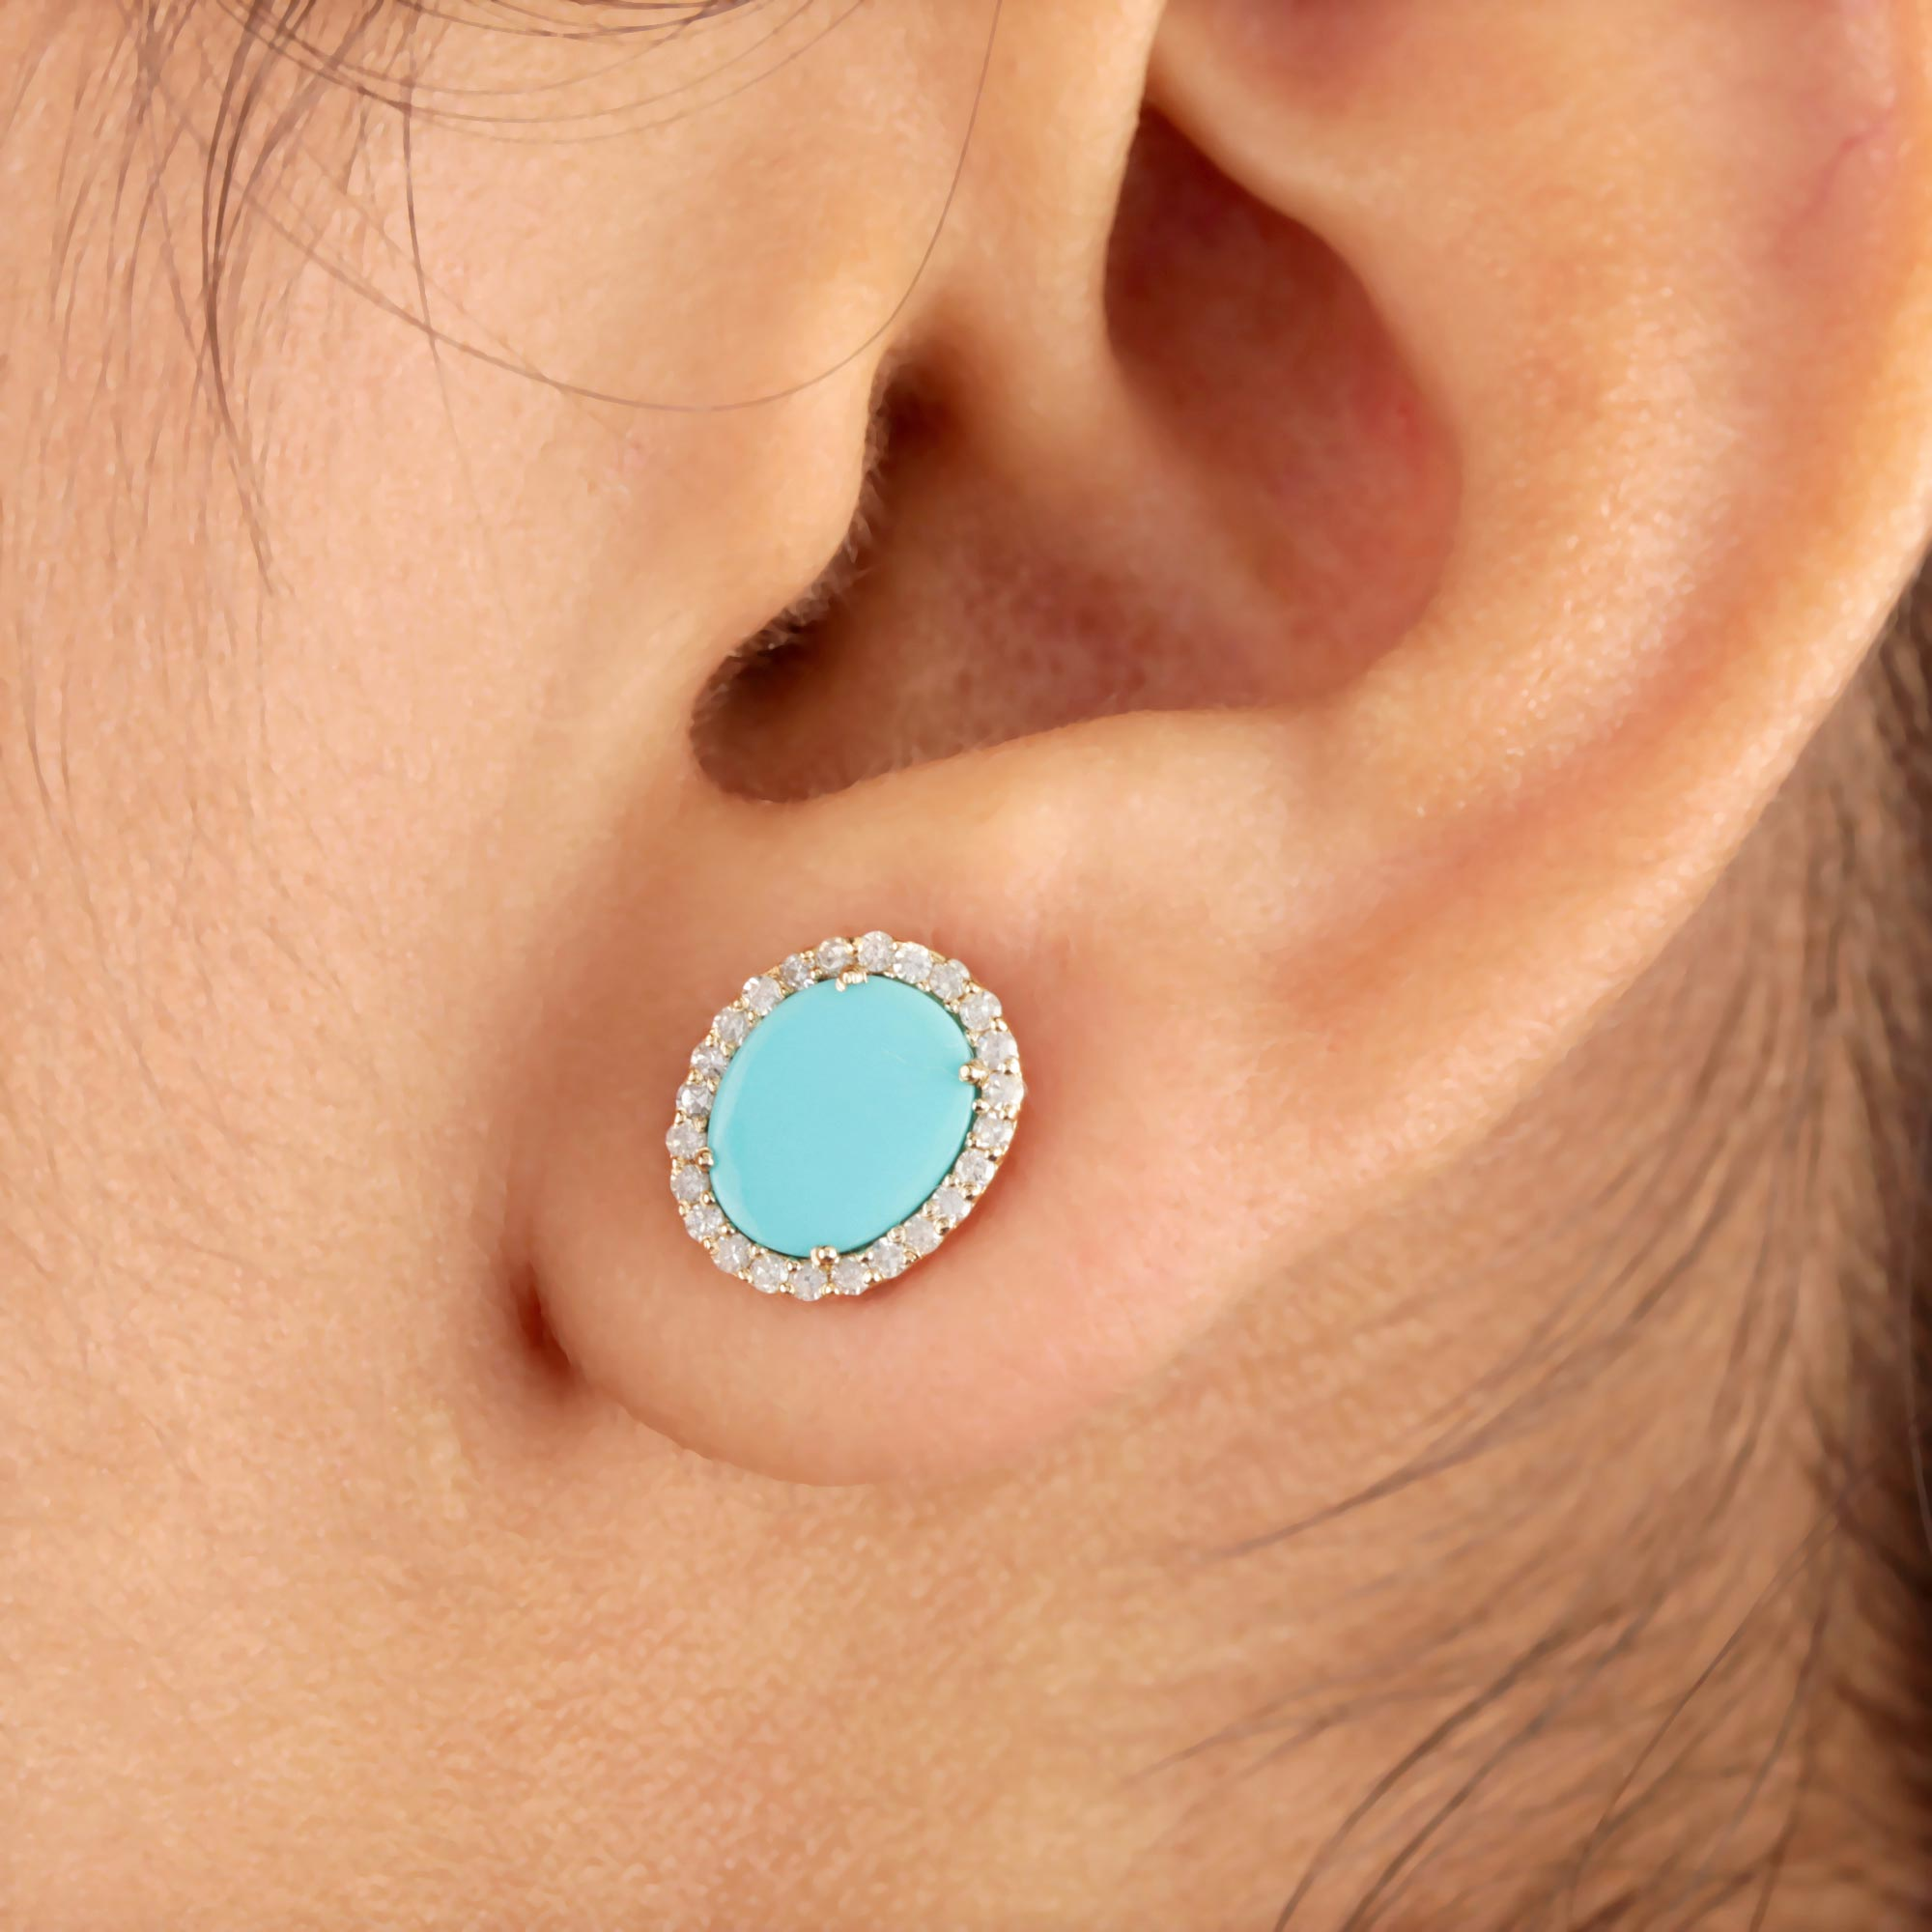 Turquoise Gemstone Stud Earrings 14K Solid Gold Natural Diamond Jewelry